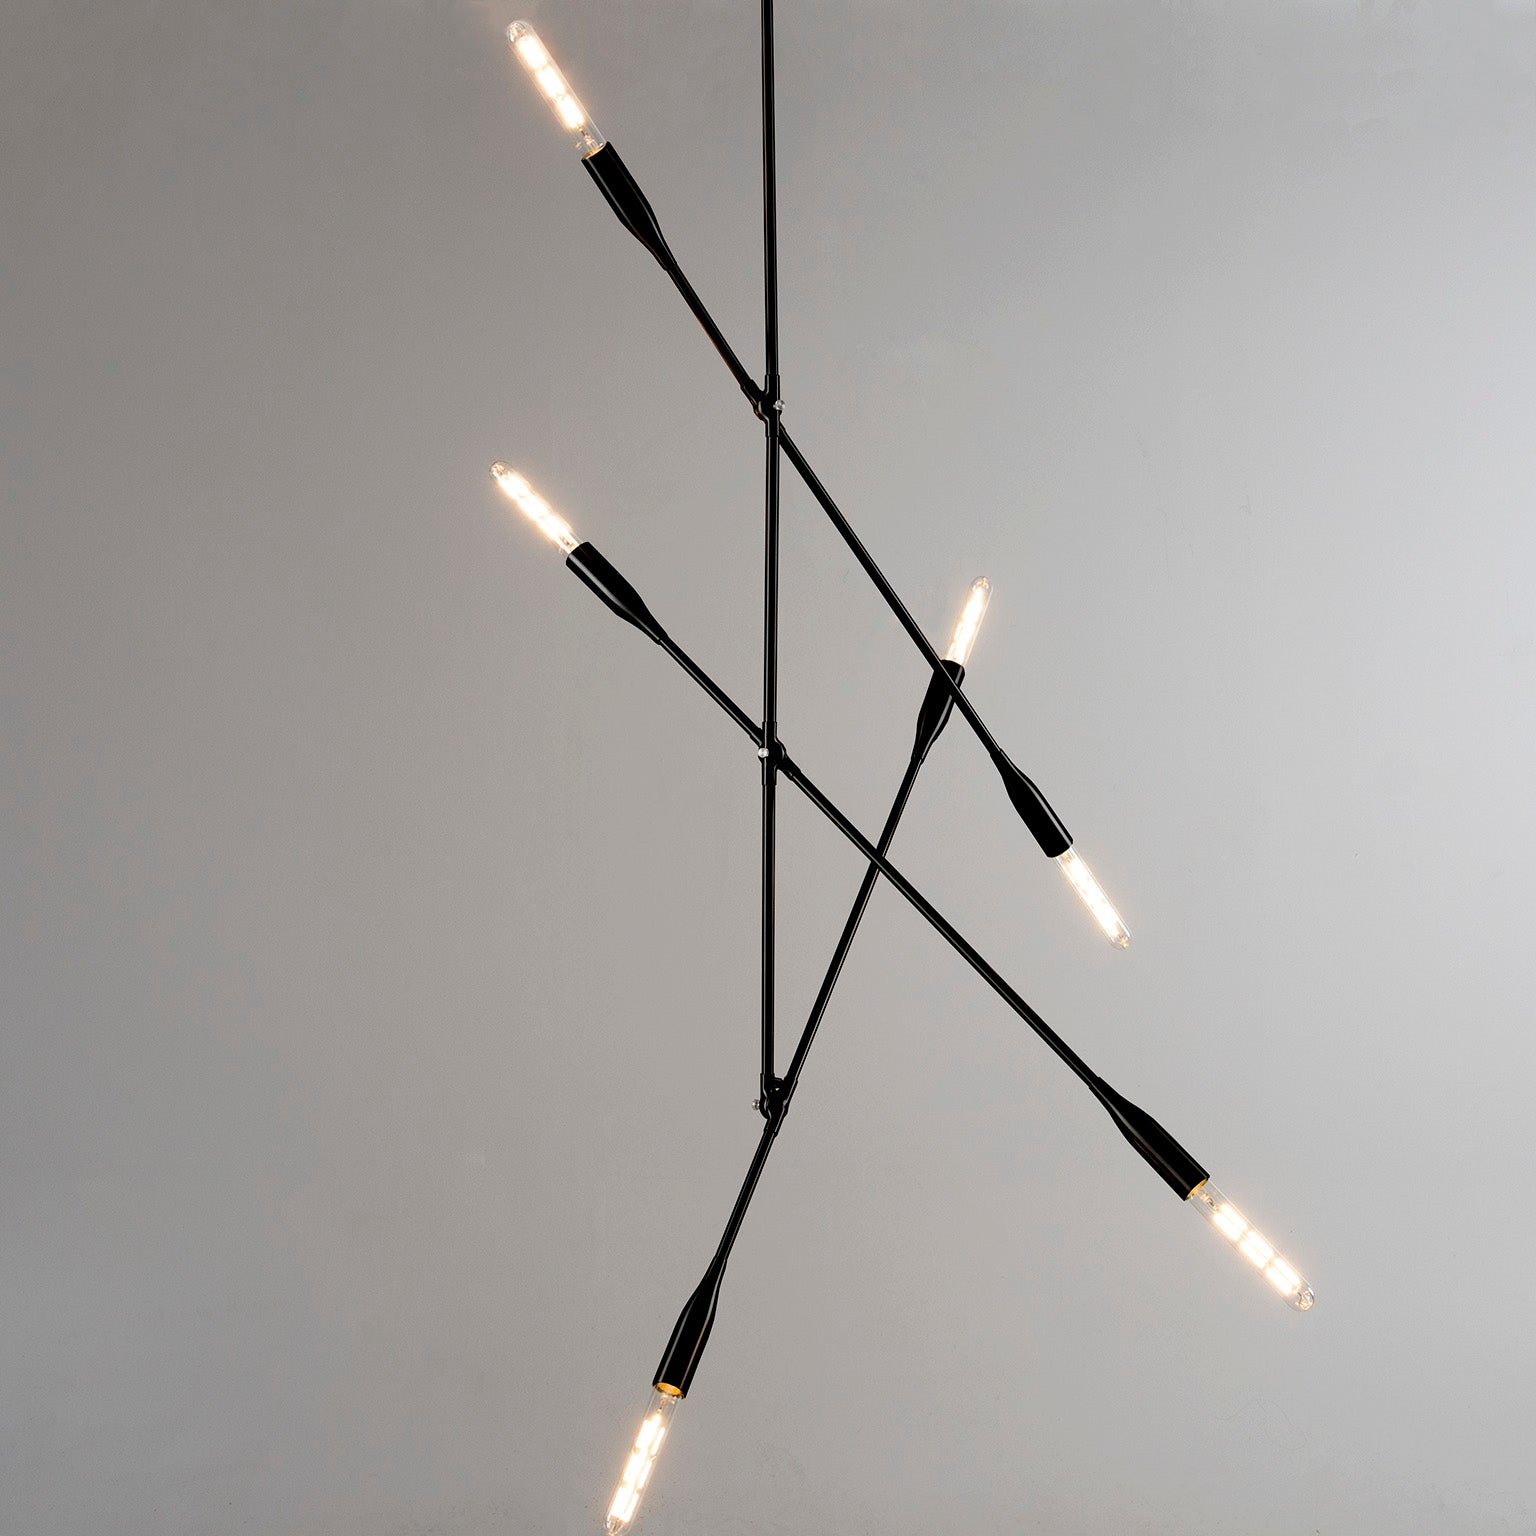 Sorenthia 3-Arm mid-century modern inspired light fixture in Black Poppy powder coat with Nickel Details by Studio DUNN